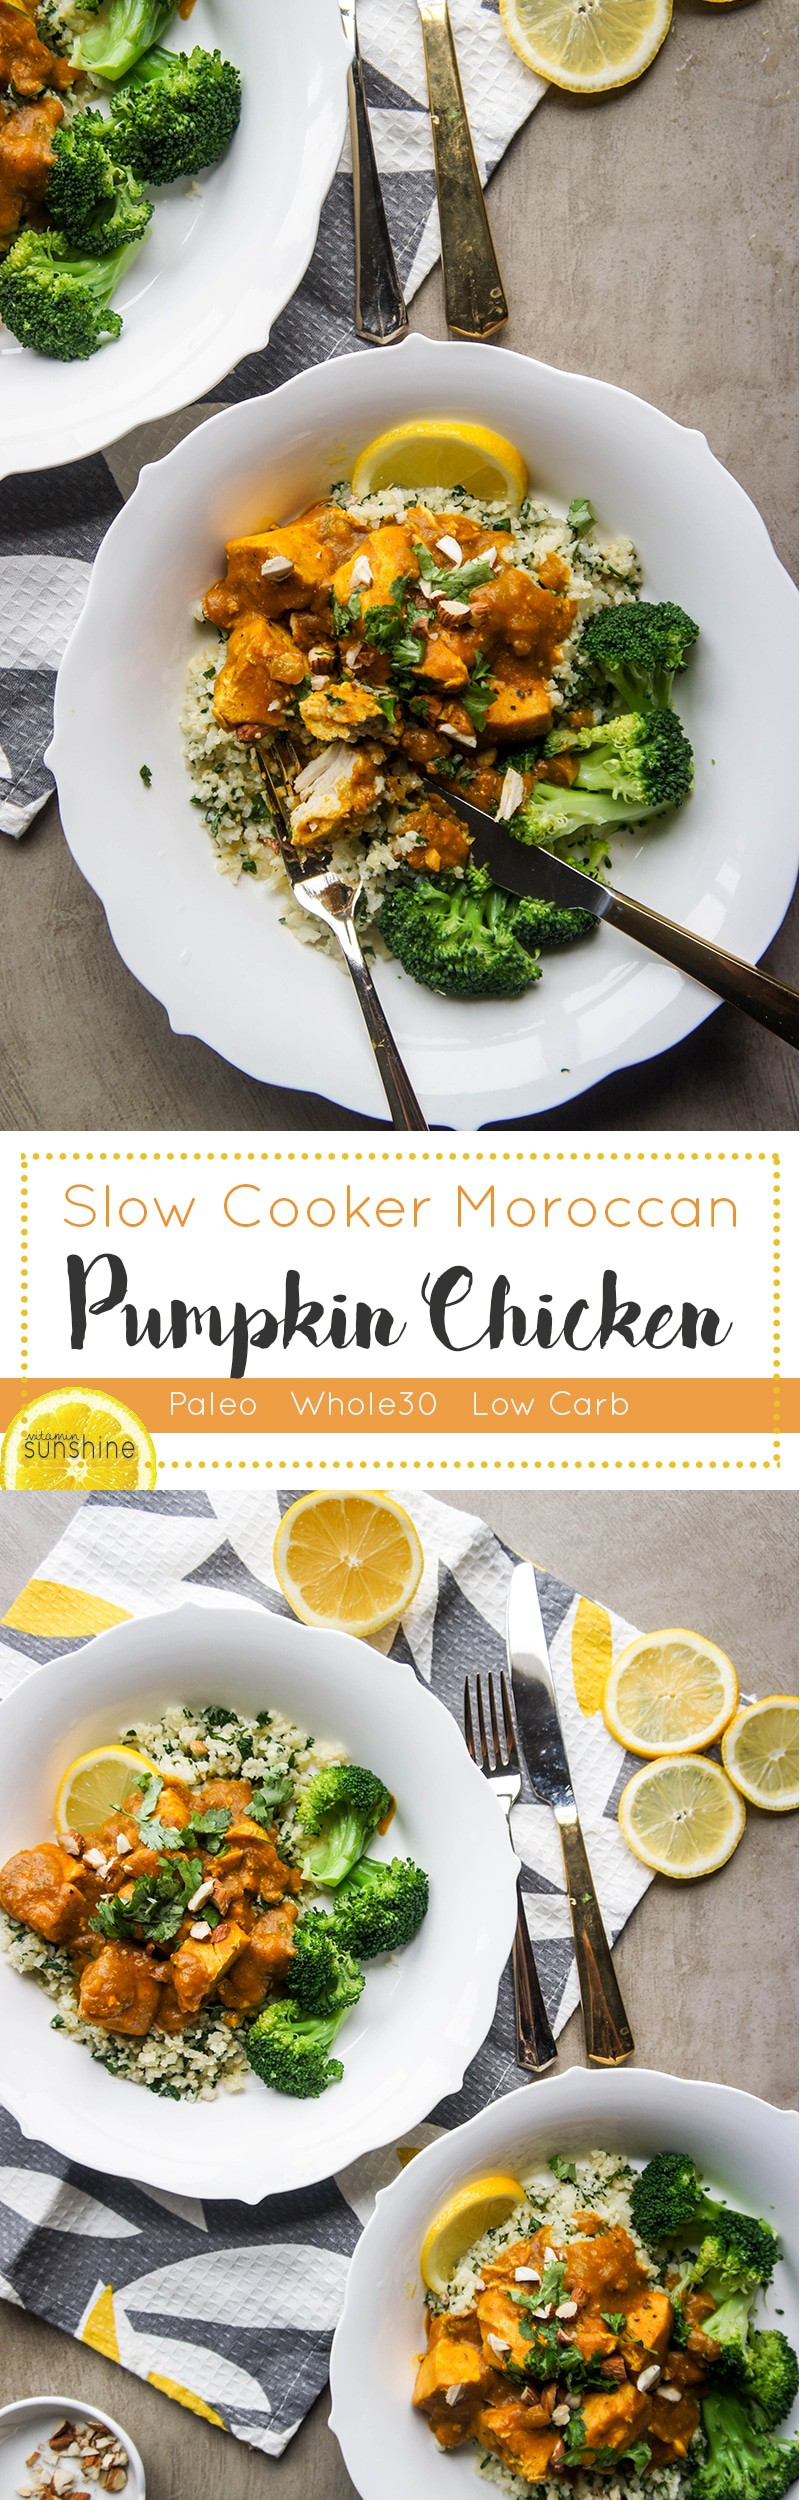 Slow Cooker Moroccan Pumpkin Chicken / Tons of flavor and spice, minimal work to have a comforting, healthy meal prepared!